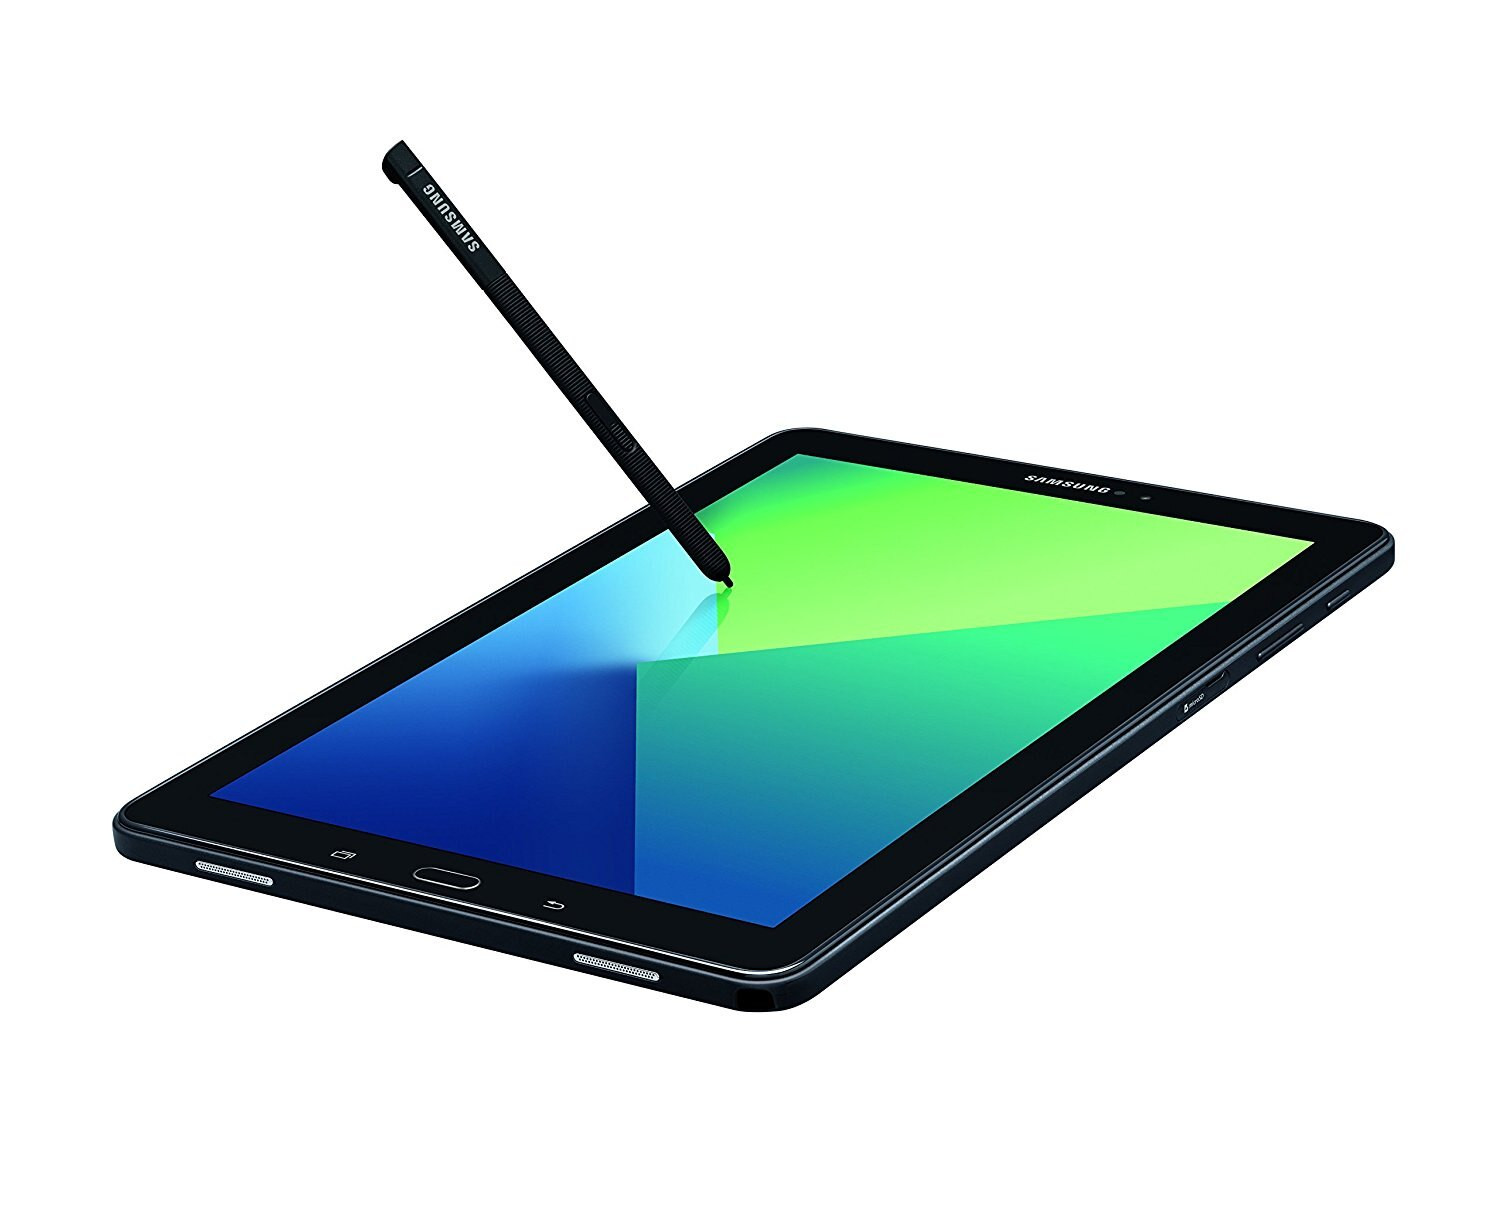 Samsung Galaxy Tab A SM-P580 10.1-Inch 16 GB Tablet with S Pen (Black) 0